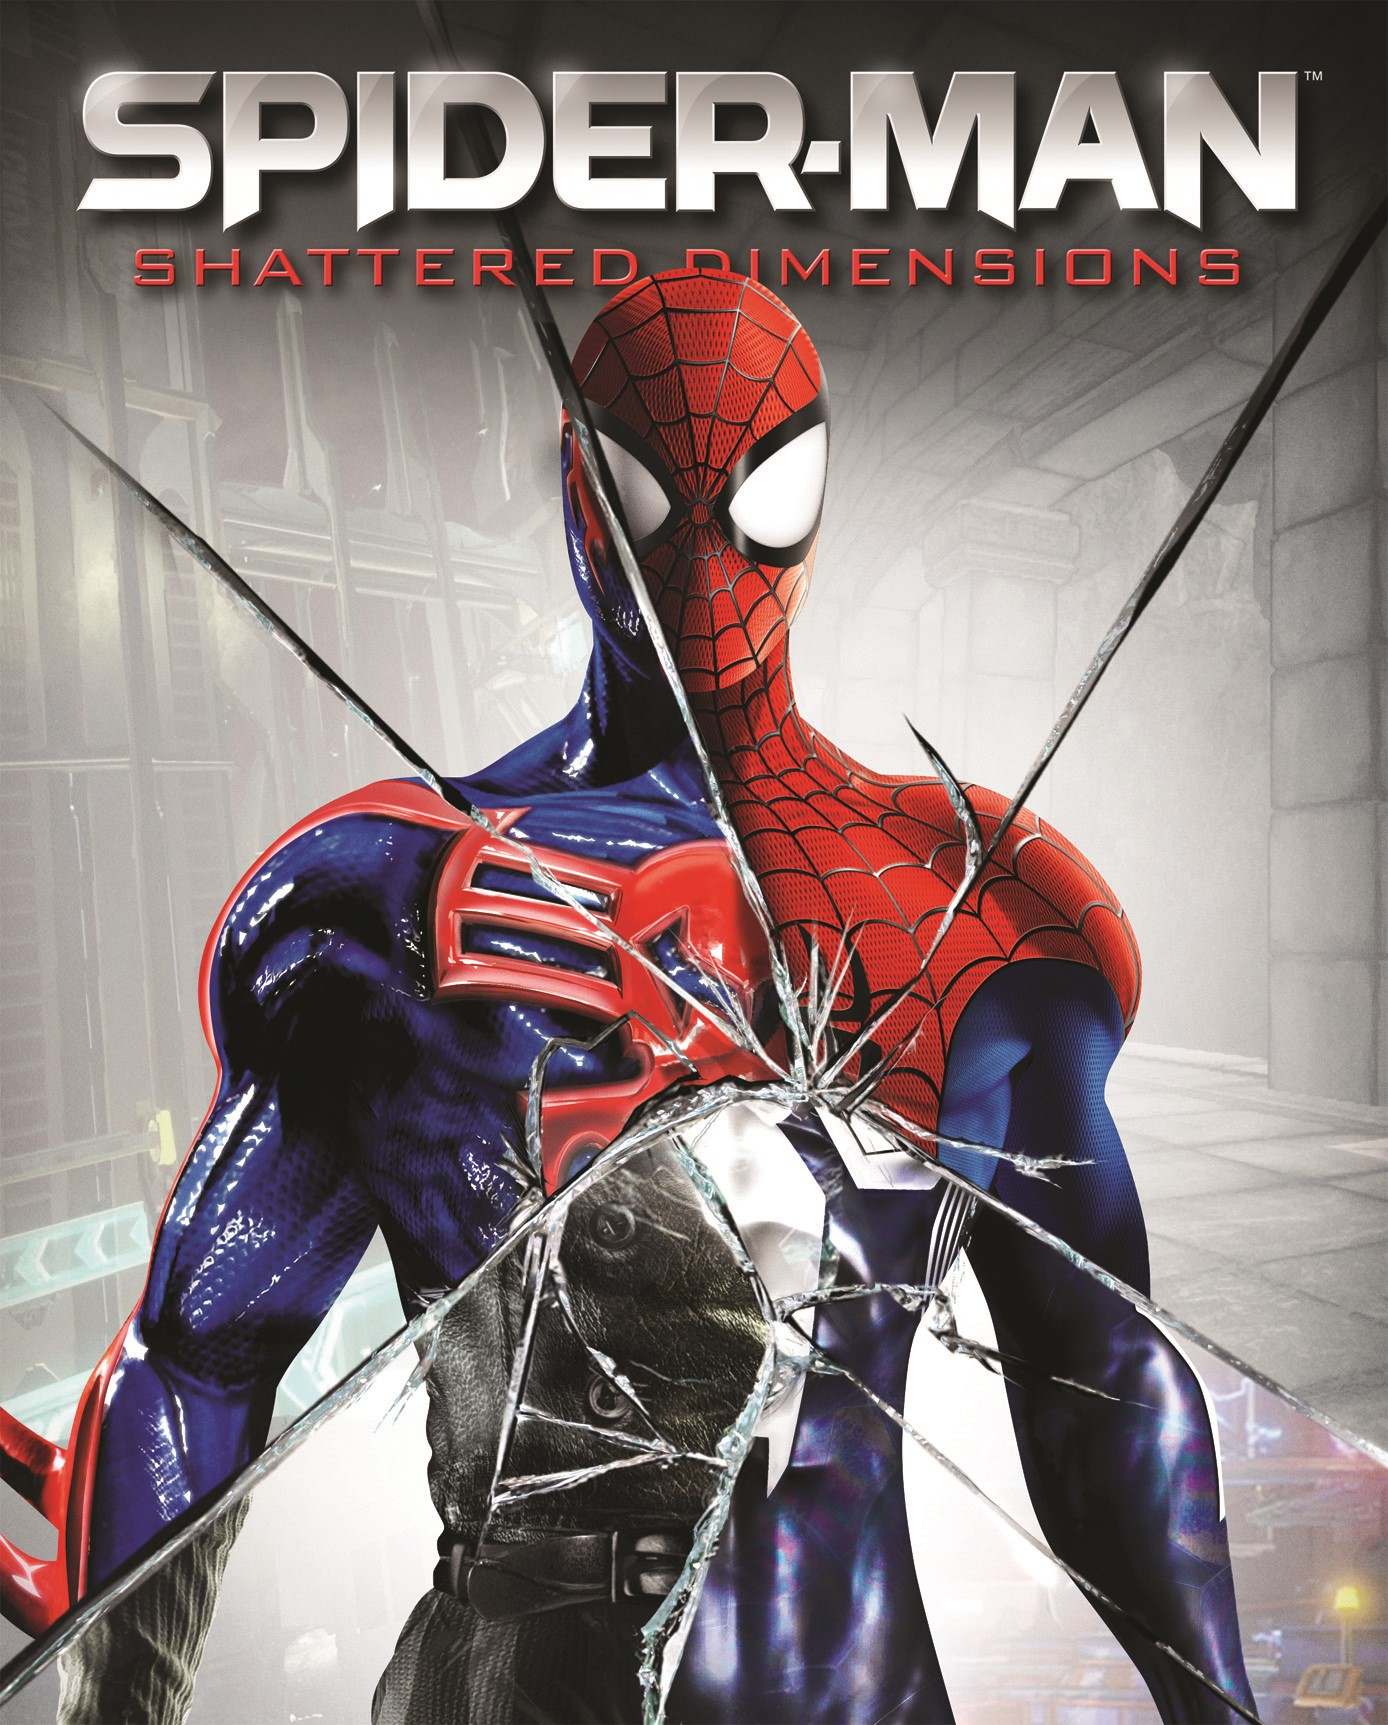 SPIDER-MAN: SHATTERED DIMENSIONS (Steam)(Region Free)